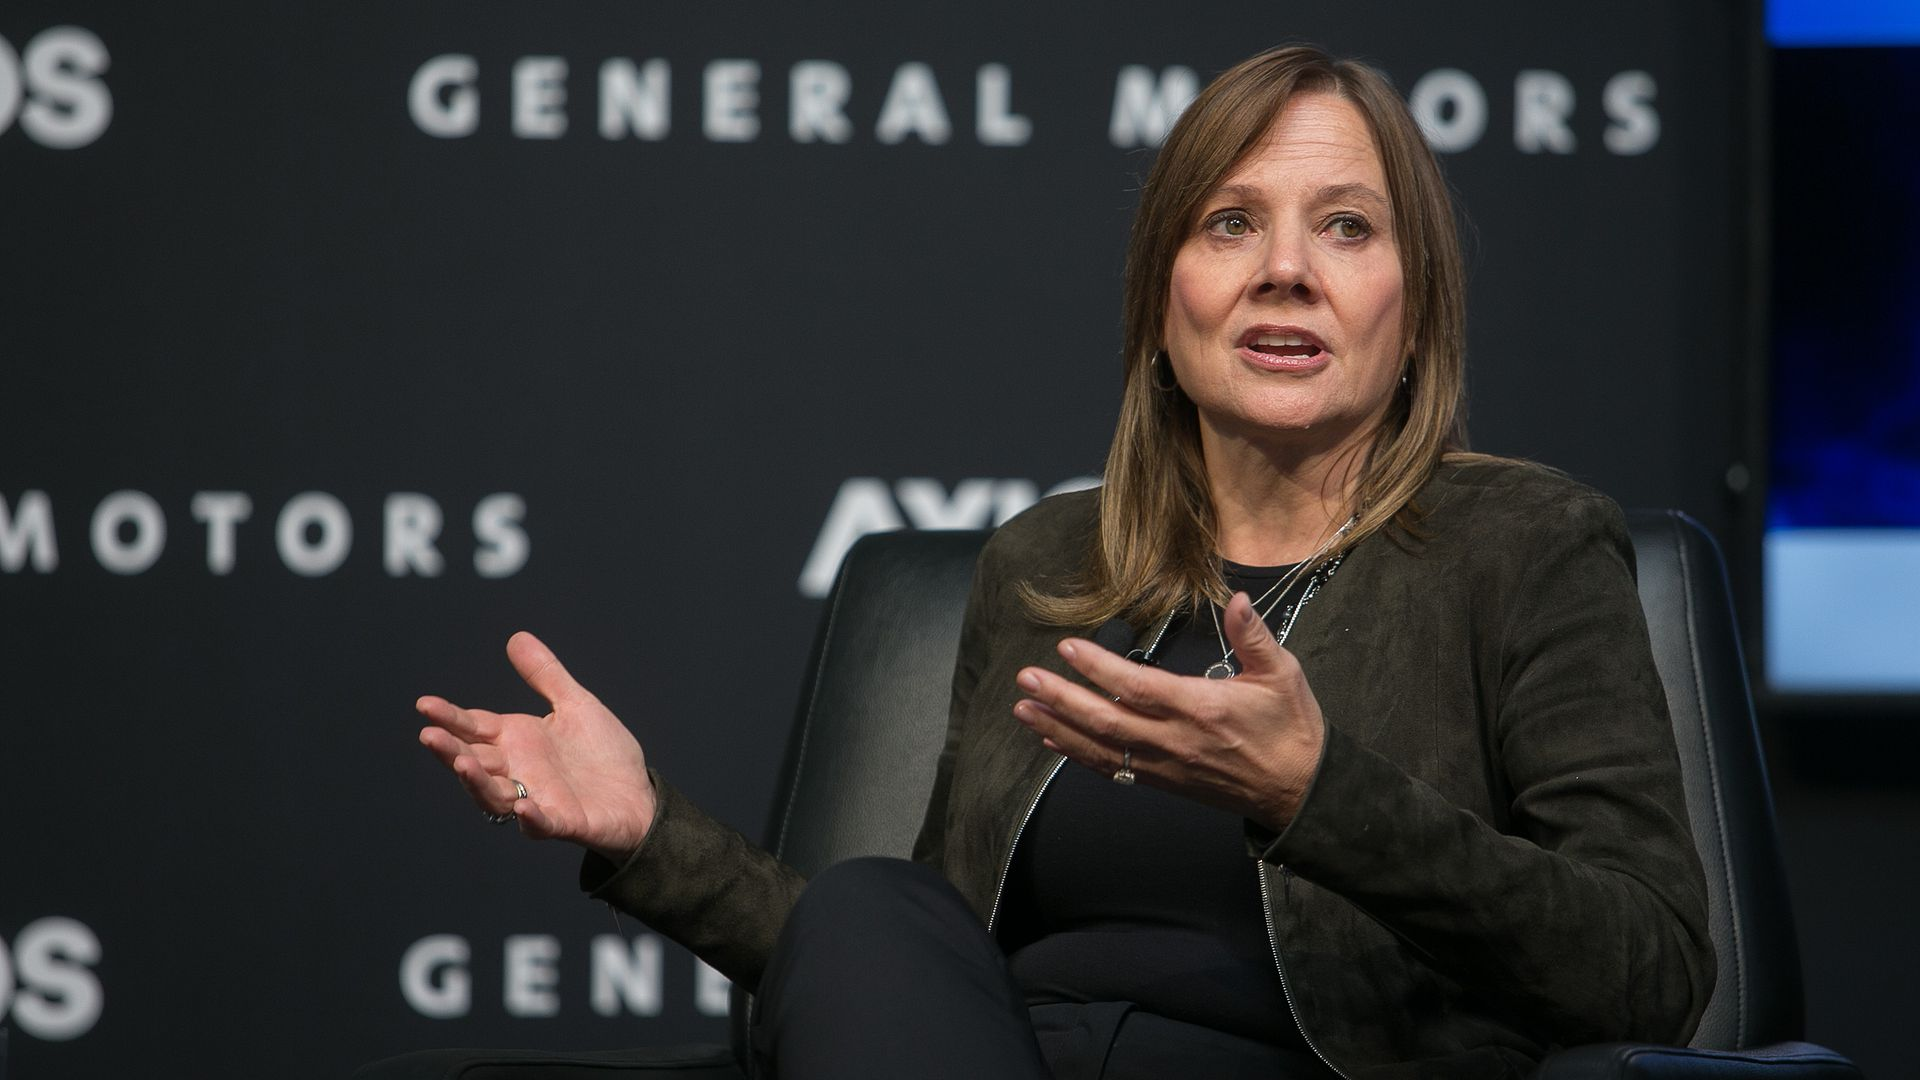 General Motors CEO Mary Barra at an Axios event in Boston.